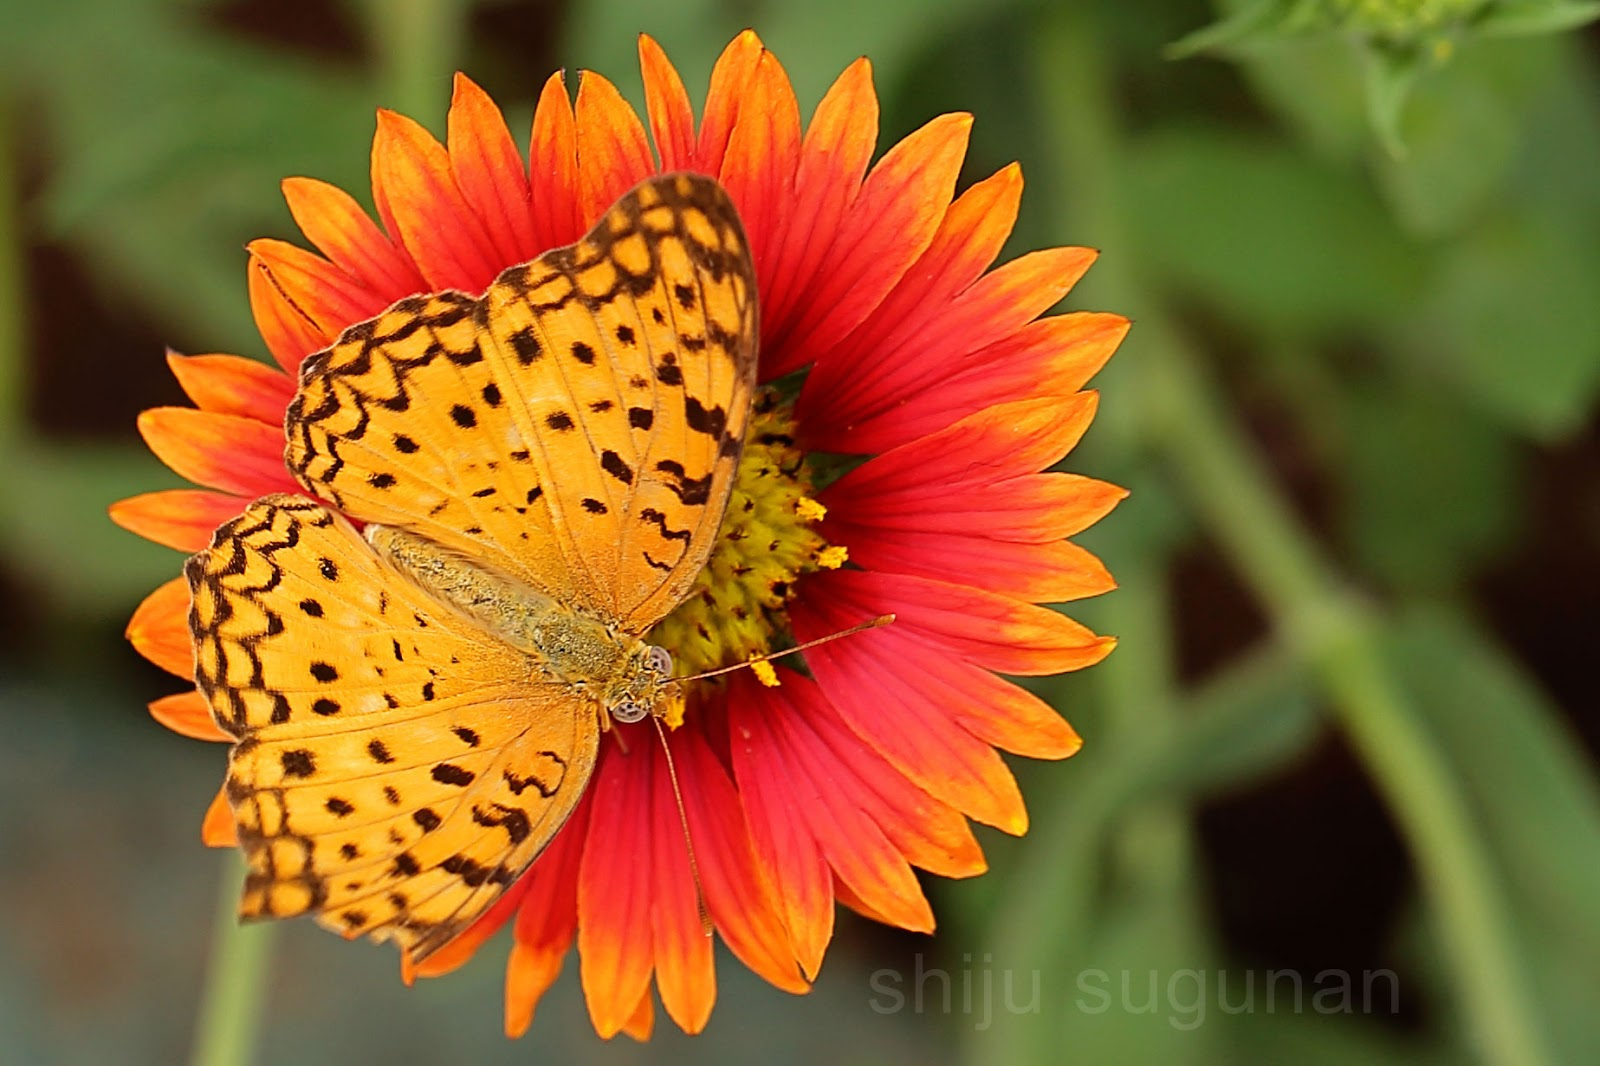 Phalanta Phalantha Butterfly Photo by @shijuvenate